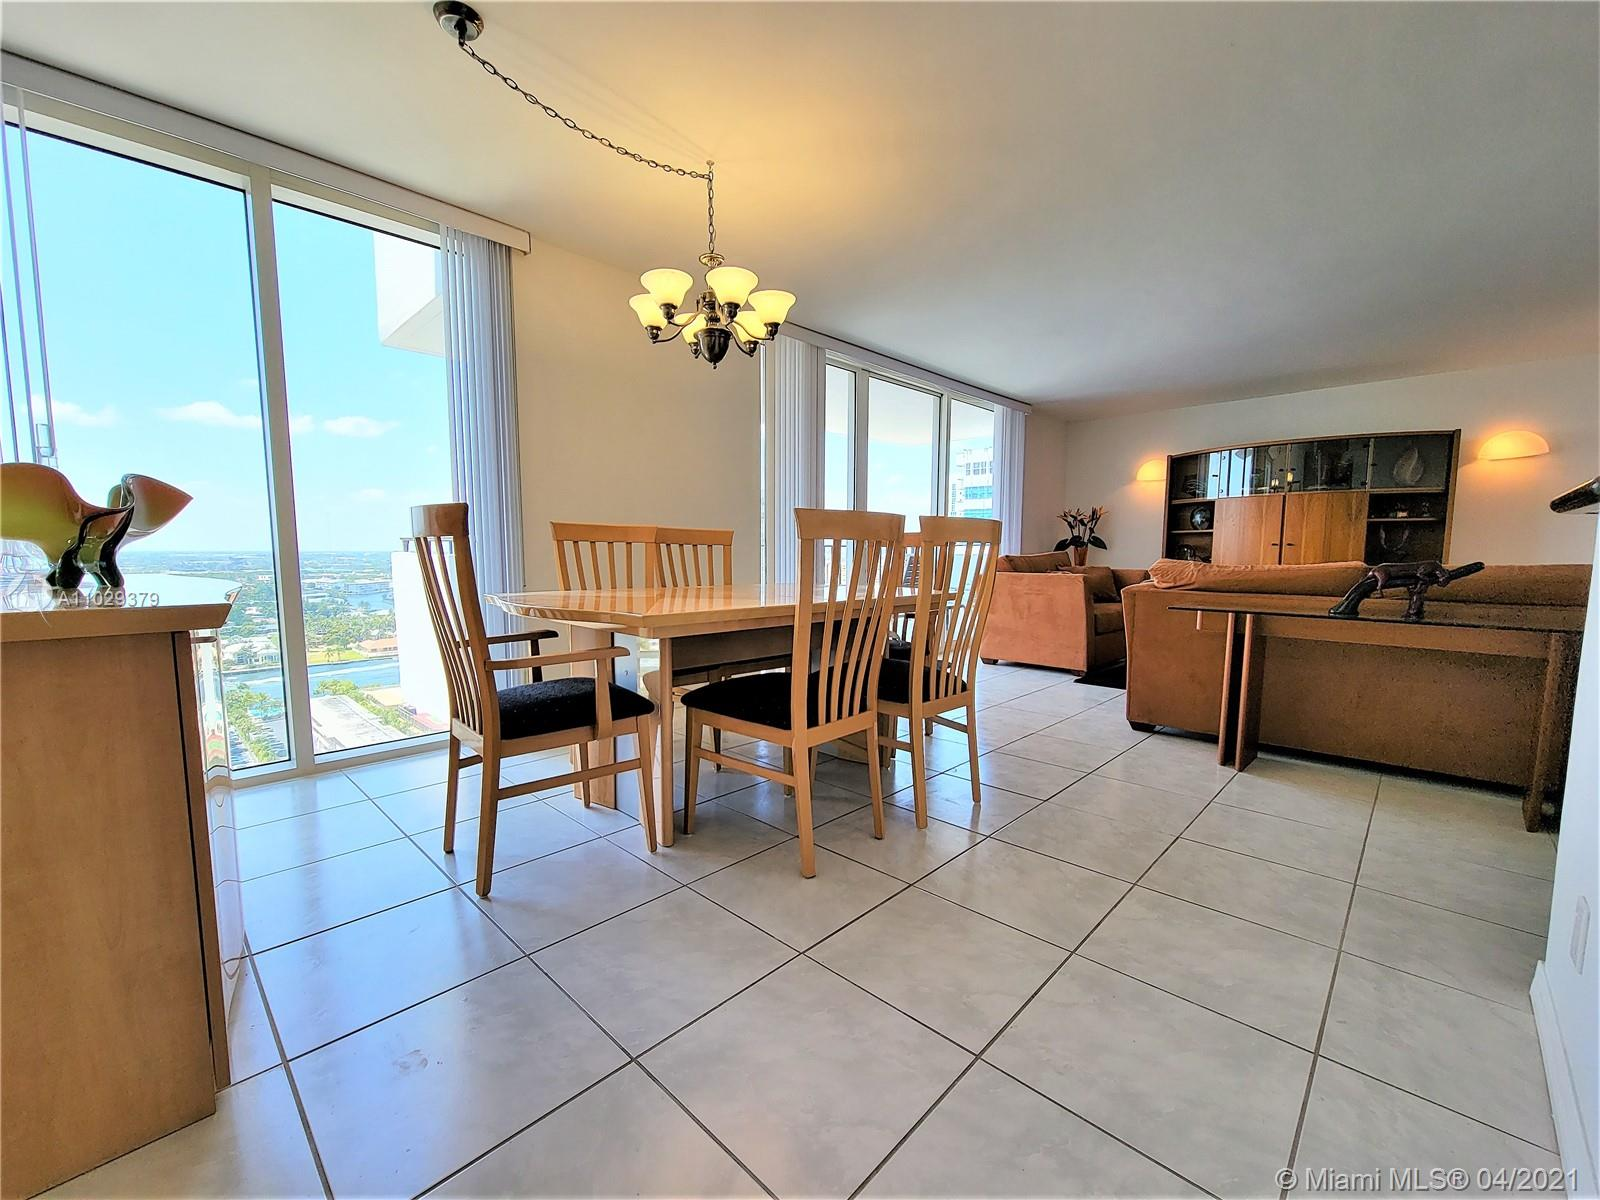 Photo of 2030 Ocean Dr #2026, Hallandale Beach, Florida, 33009 - Plenty Of Space To Entertain, Enjoy Colorful Sunsets and See Yachts Cruising By.